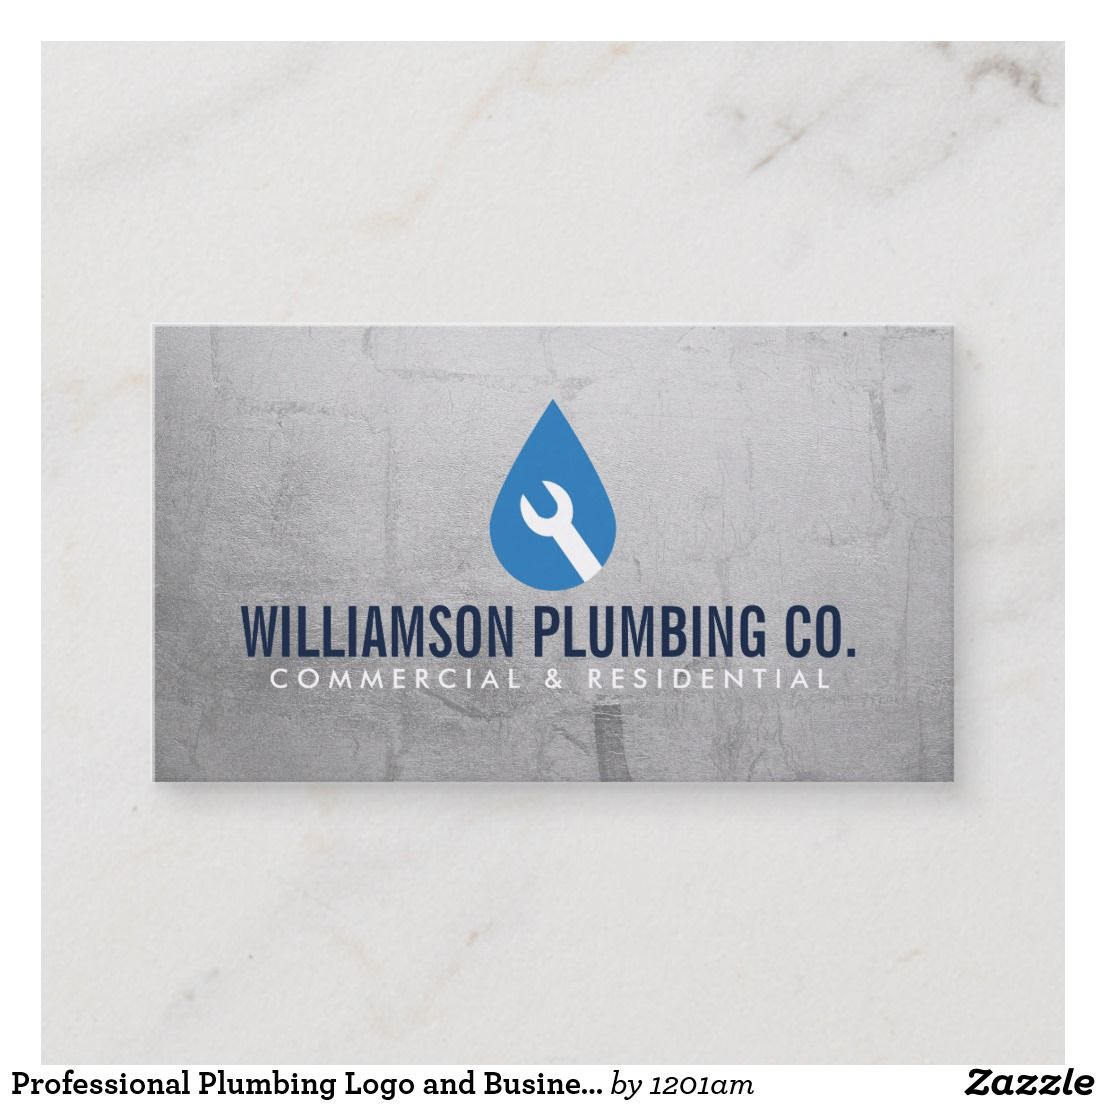 Professional Plumbing Logo and Business Card